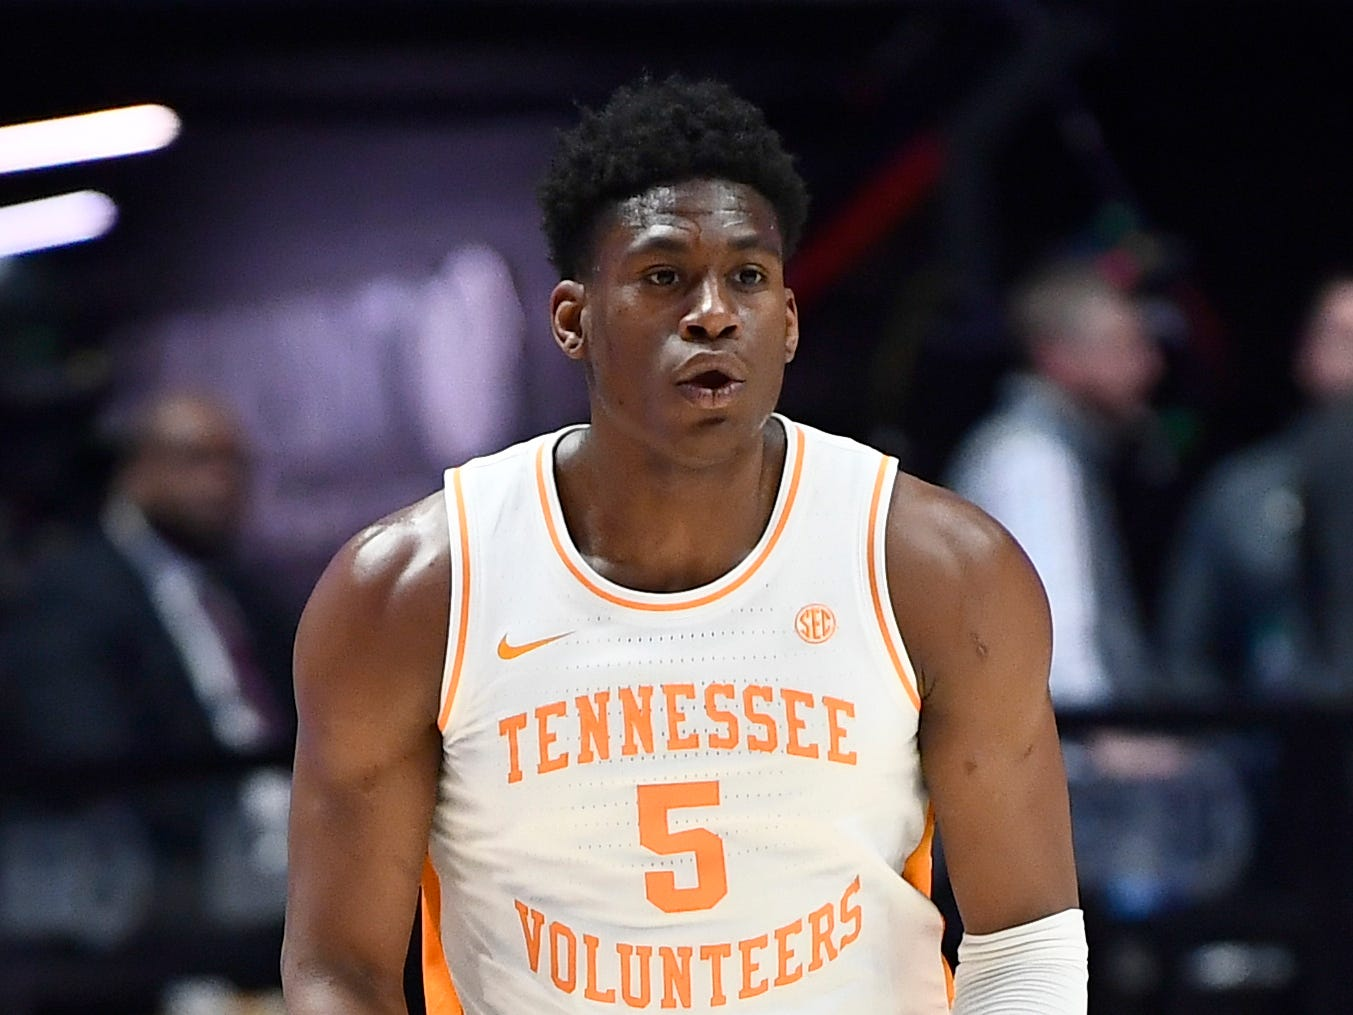 Tennessee guard Admiral Schofield (5) celebrates his three pointer during the first half of the SEC Men's Basketball Tournament game against Mississippi State at Bridgestone Arena in Nashville, Tenn., Friday, March 15, 2019.